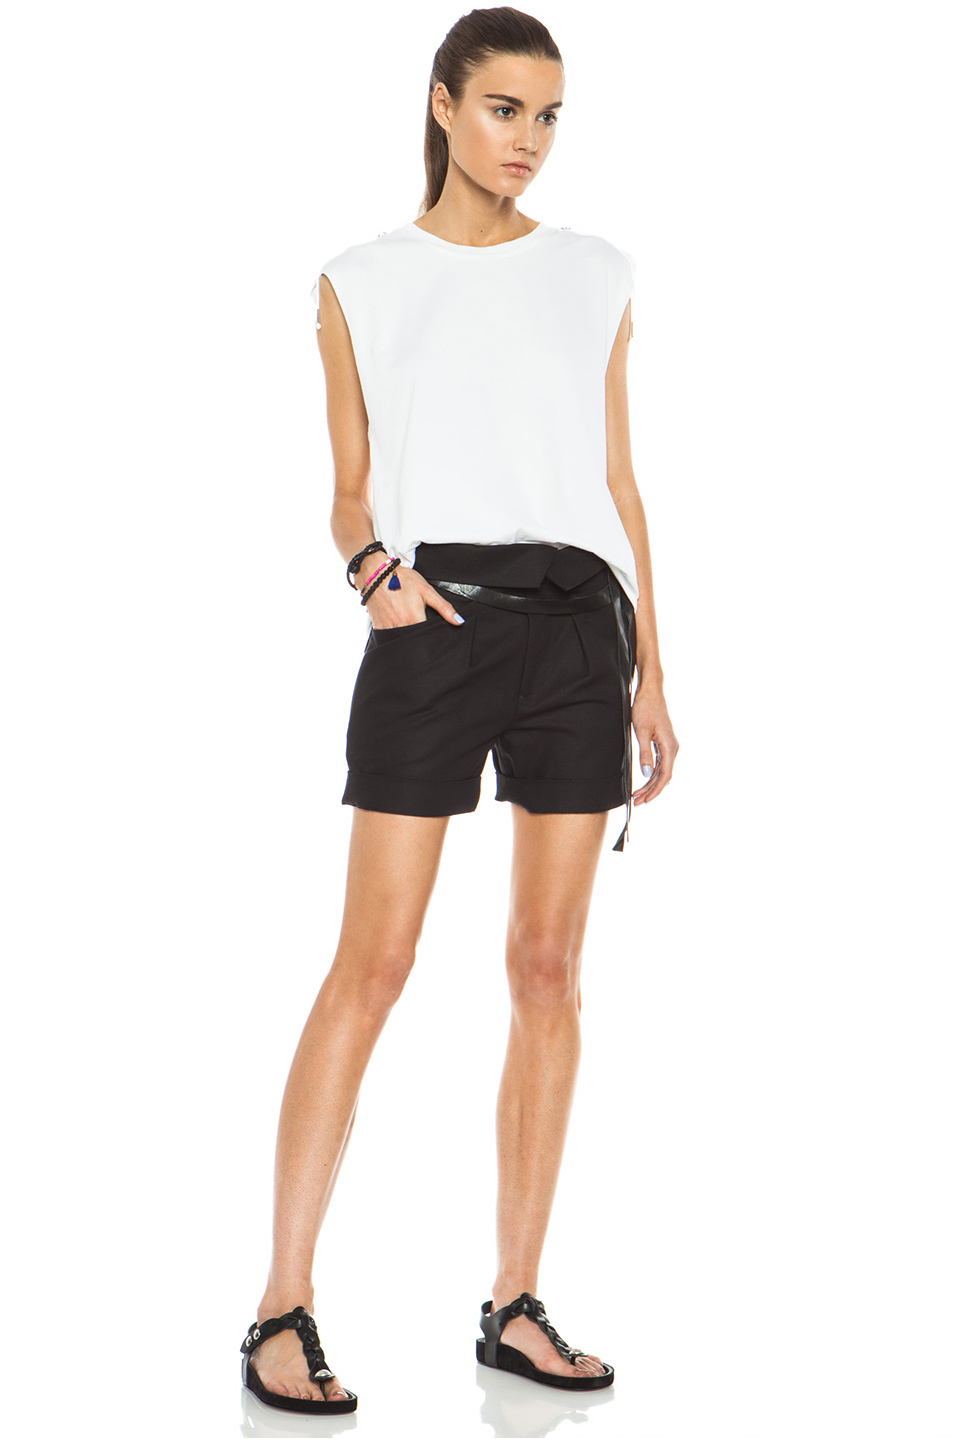 Isabel Marant|Devi Foldover Cotton-Blend Short in Black